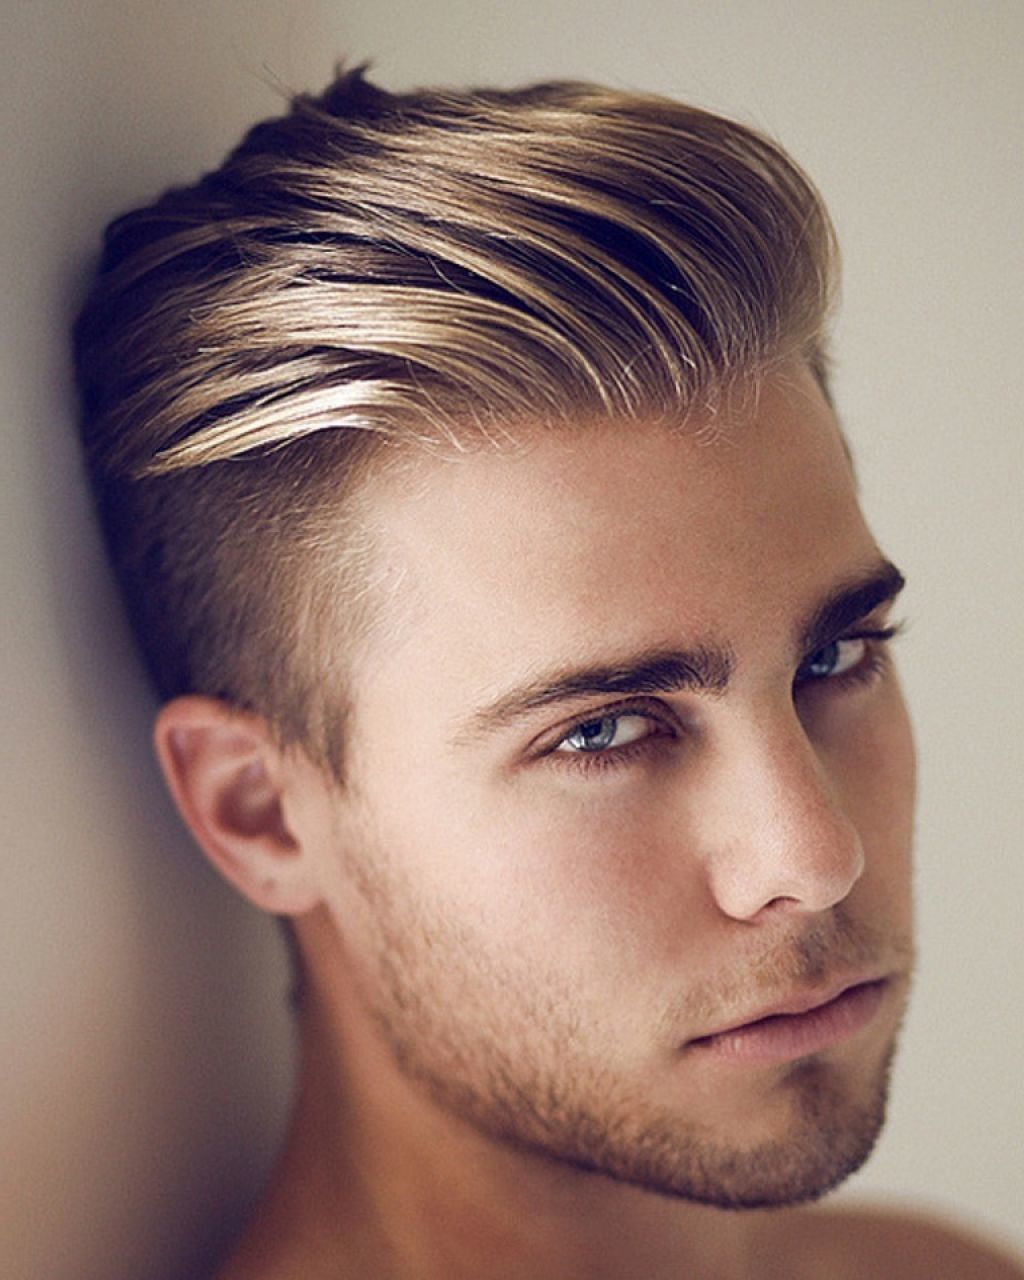 21 Blonde Hairstyles For Men That Every Modern Men Will Love To Try Hairdo Hairstyle Herenkapsels Kapsels Mannen Coole Kapsels